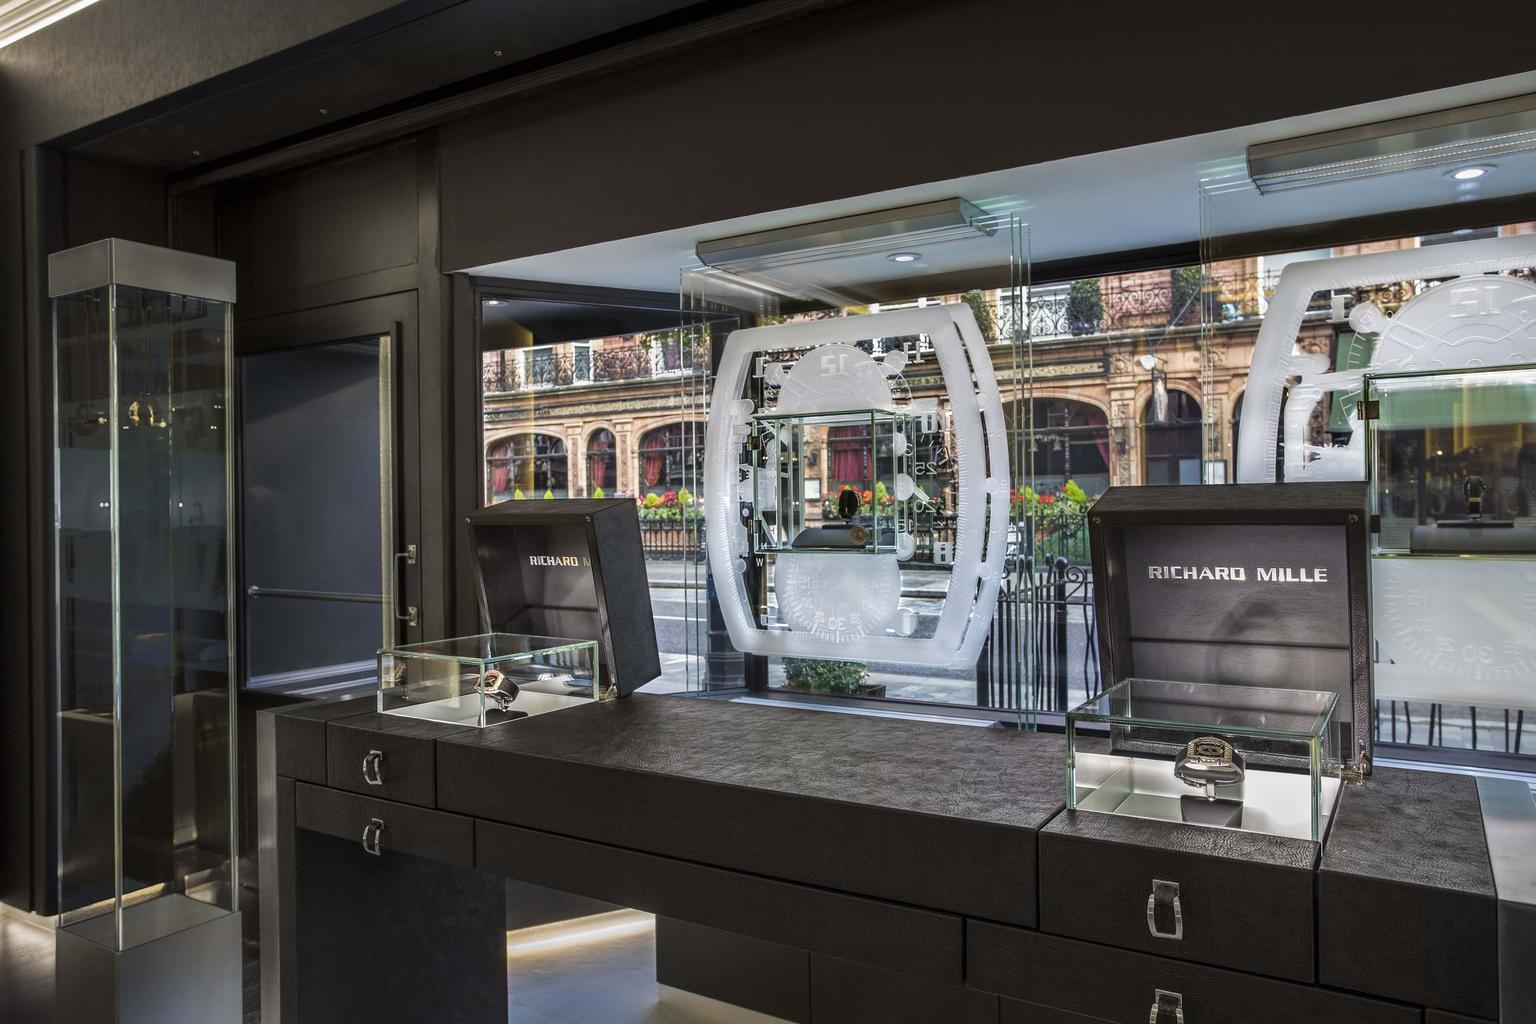 """Opening the boutique in London gives prominence to the brand's global presence and we are delighted to be part of this distinguished and vibrant area of London,"" says Richard Mille CEO of Europe, the Middle East and Africa, Peter Harrison."